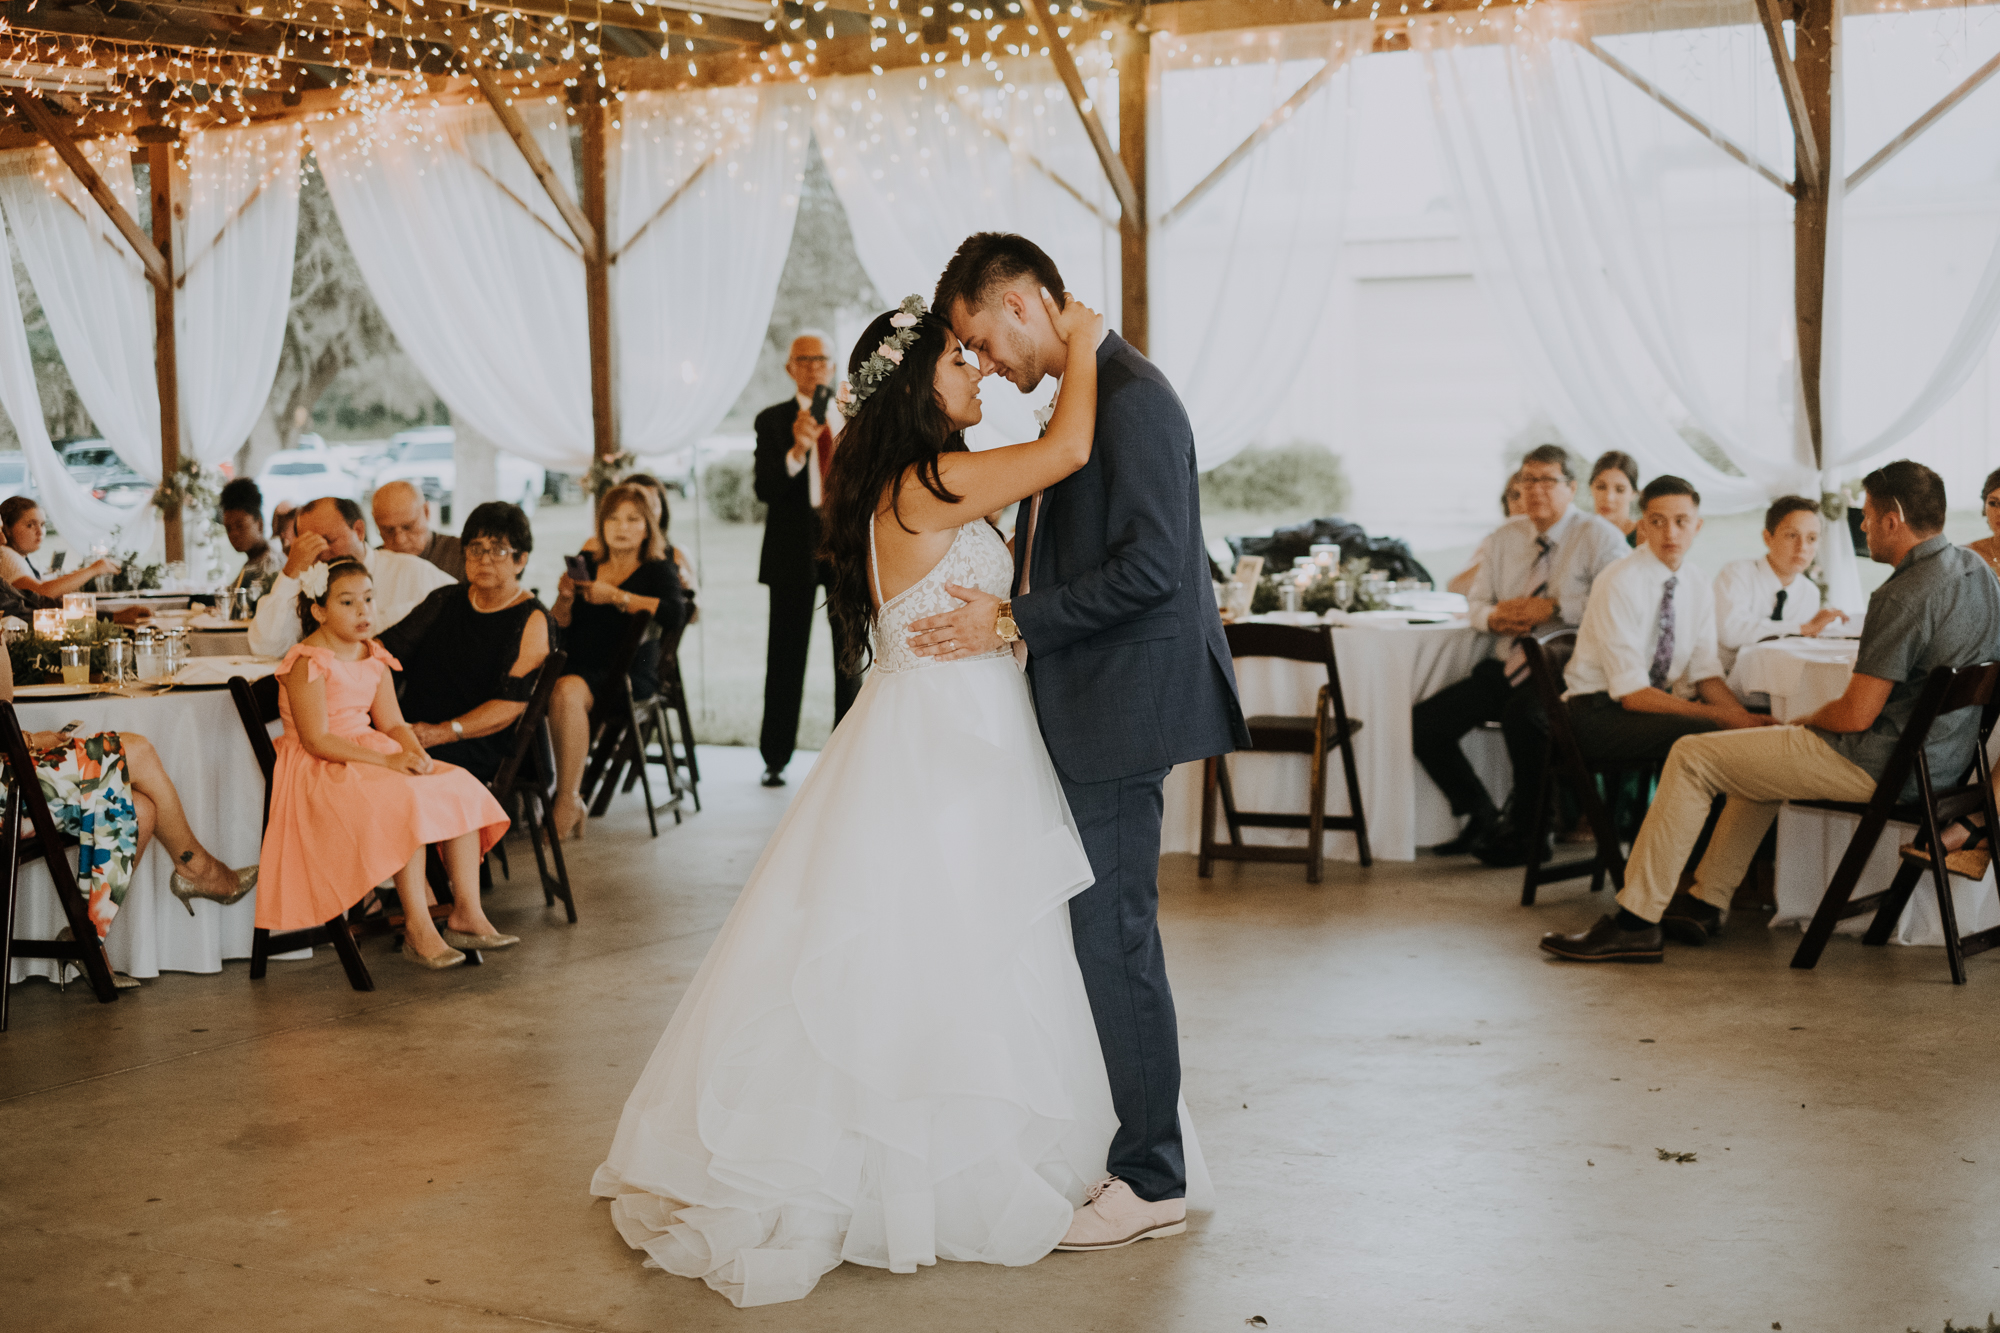 husband and wife first dance | wedding first dance | first dance as husband and wife | boho wedding reception | romantic sarasota wedding